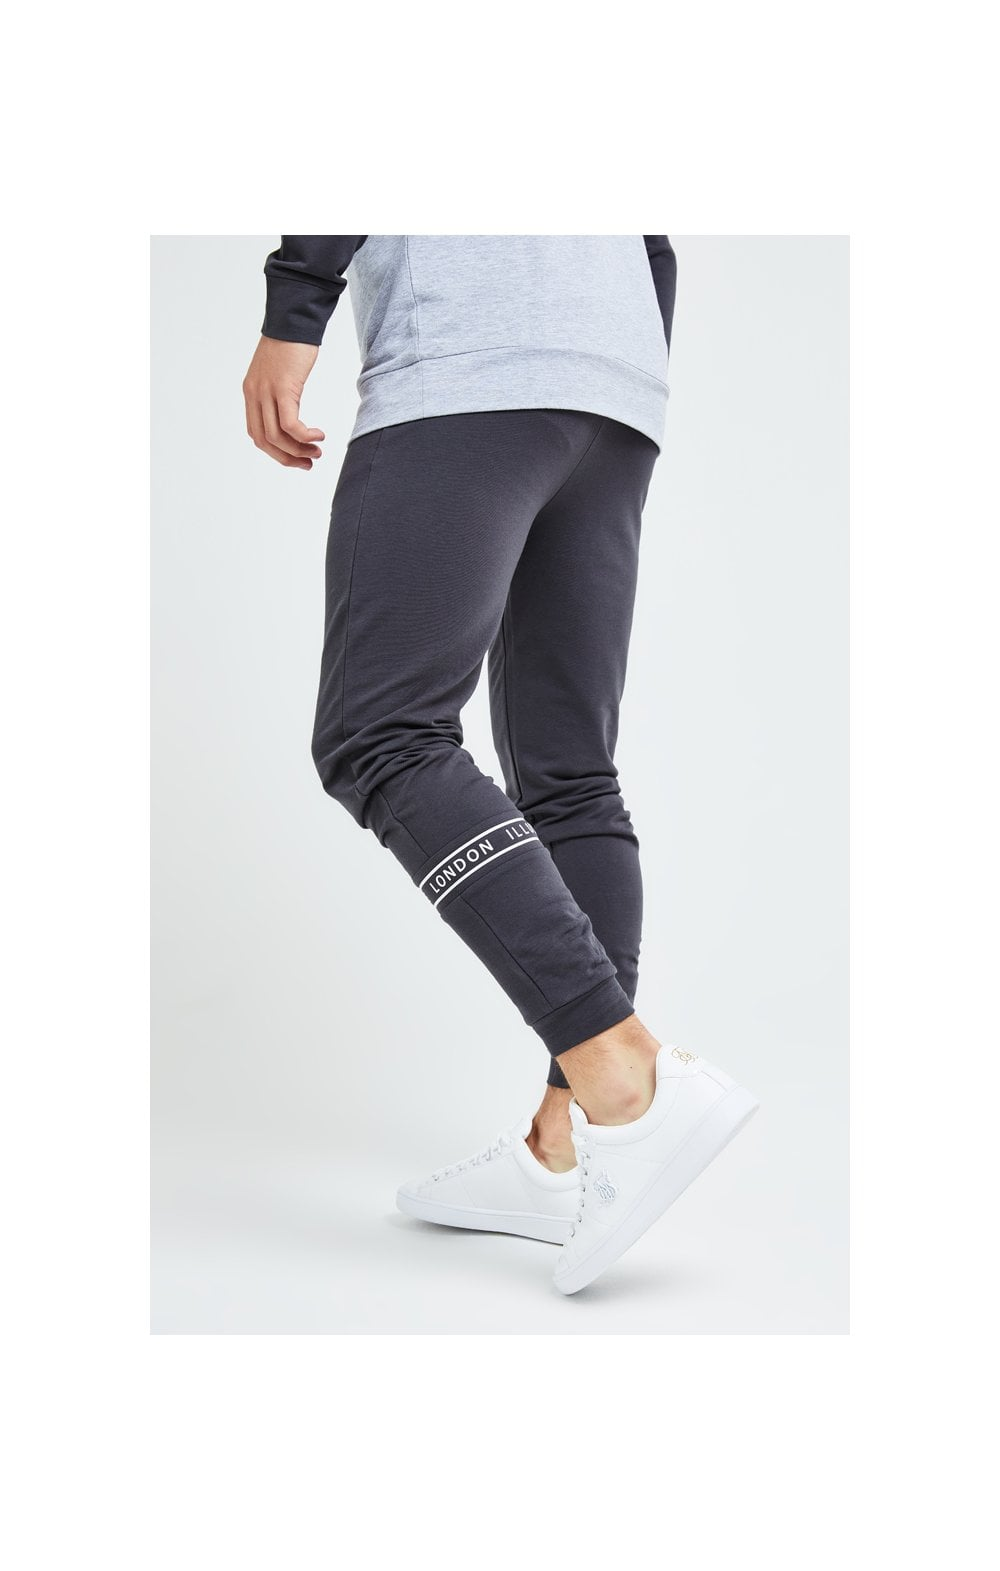 Illusive London Revere Jogger - Dark Grey & Light Grey Marl (2)